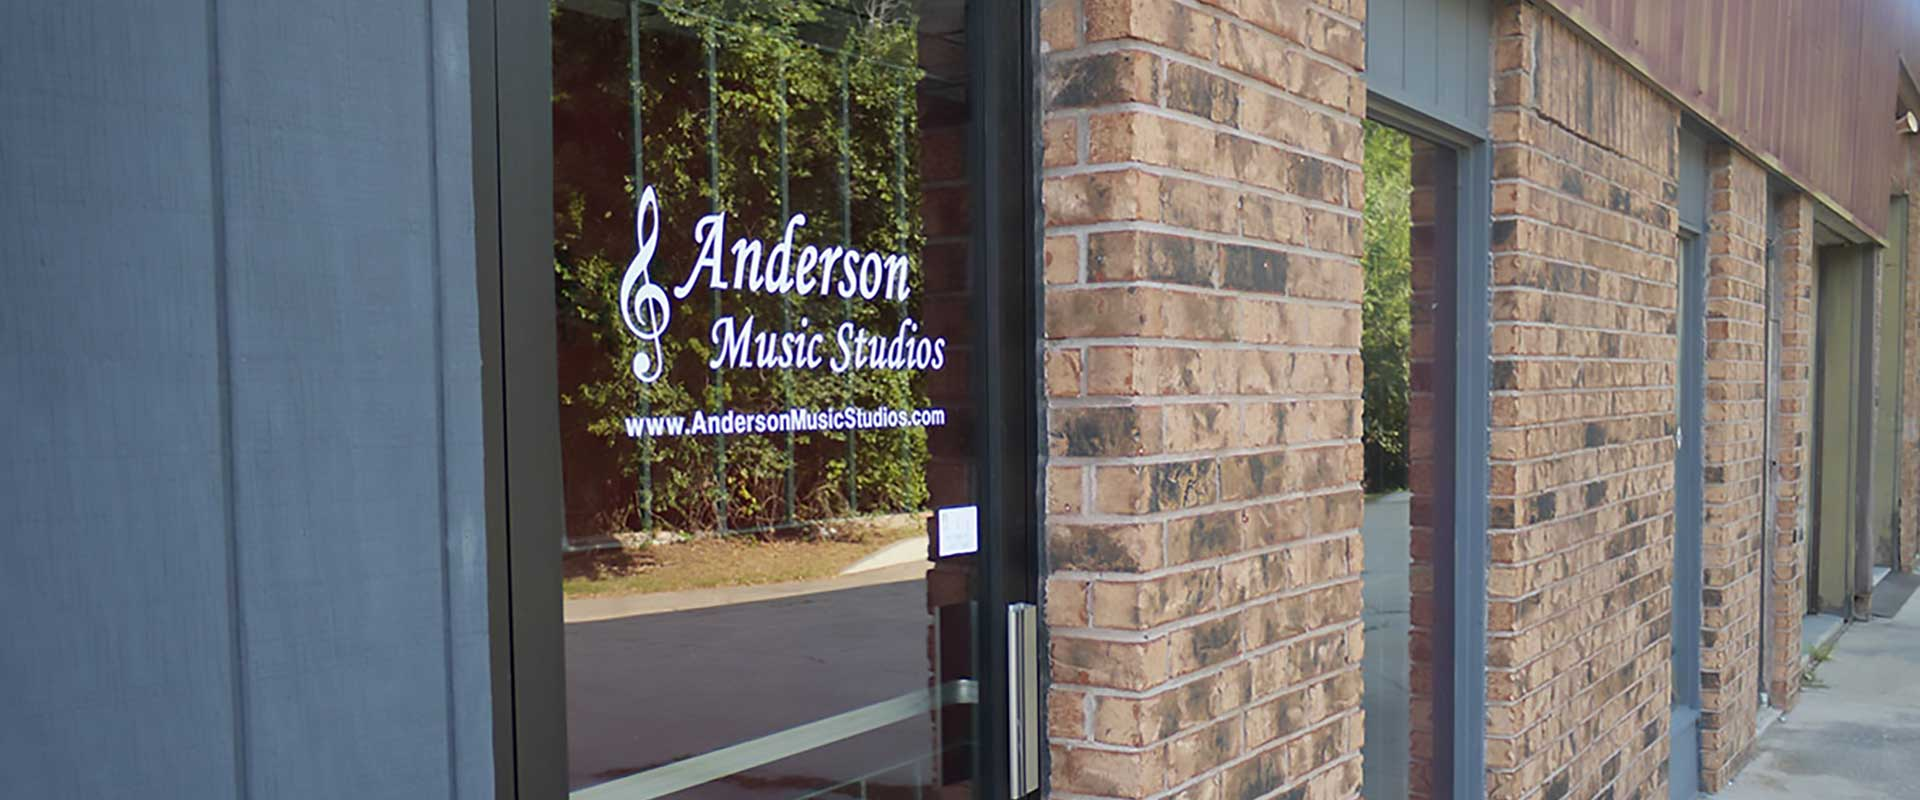 Anderson Music Studios is the #1 provider of private music lessons in Oklahoma City.